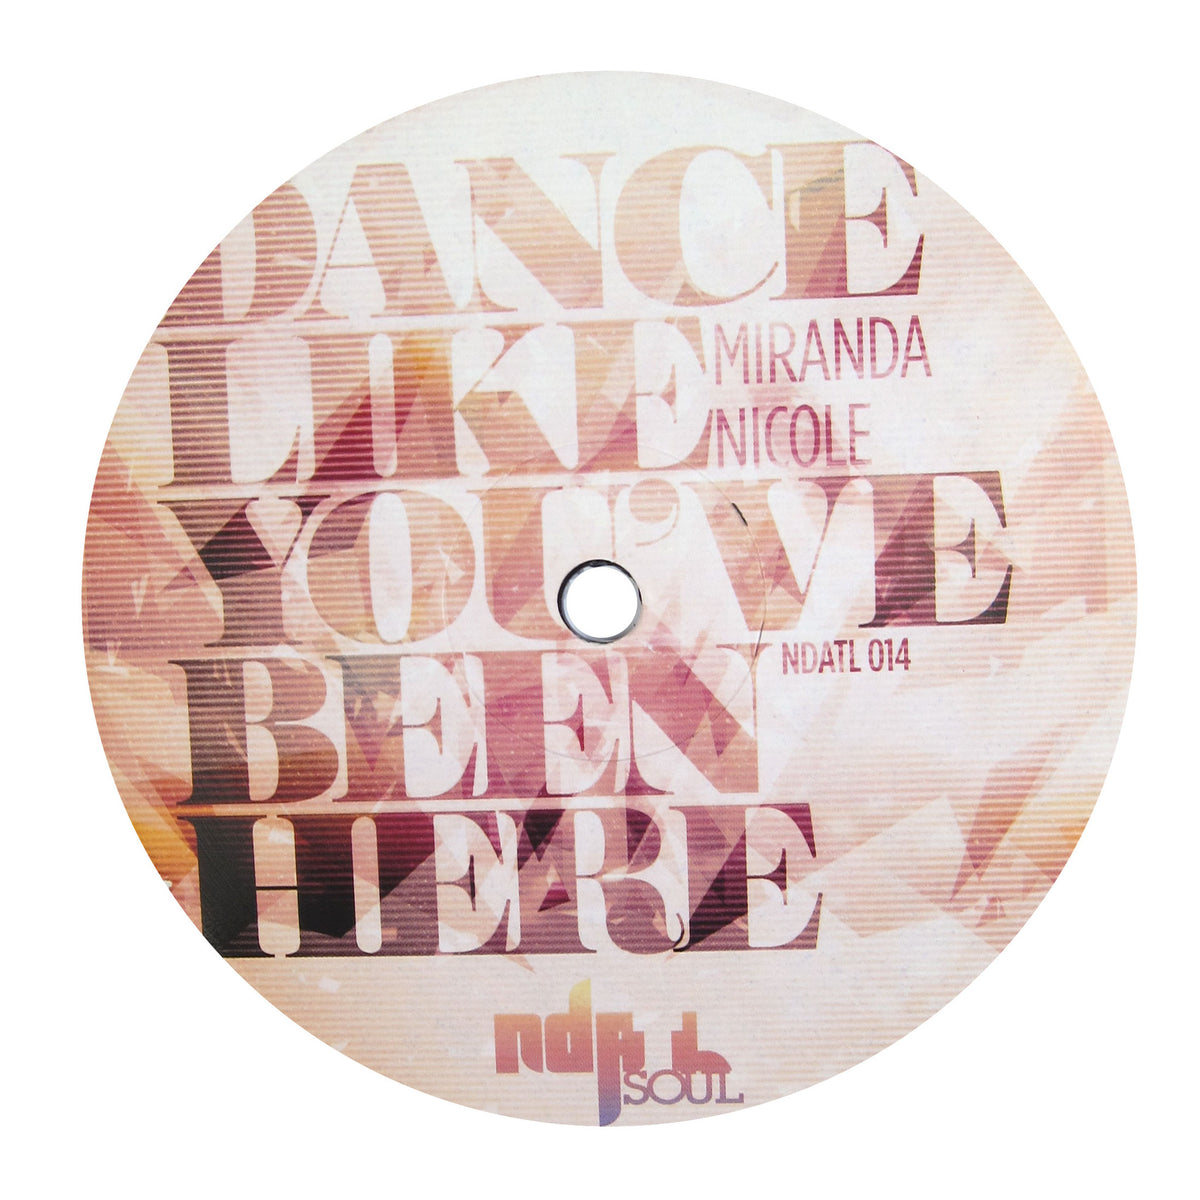 Miranda Nicole: Dance Like You've Been Here (Kai Alce) Vinyl 12""